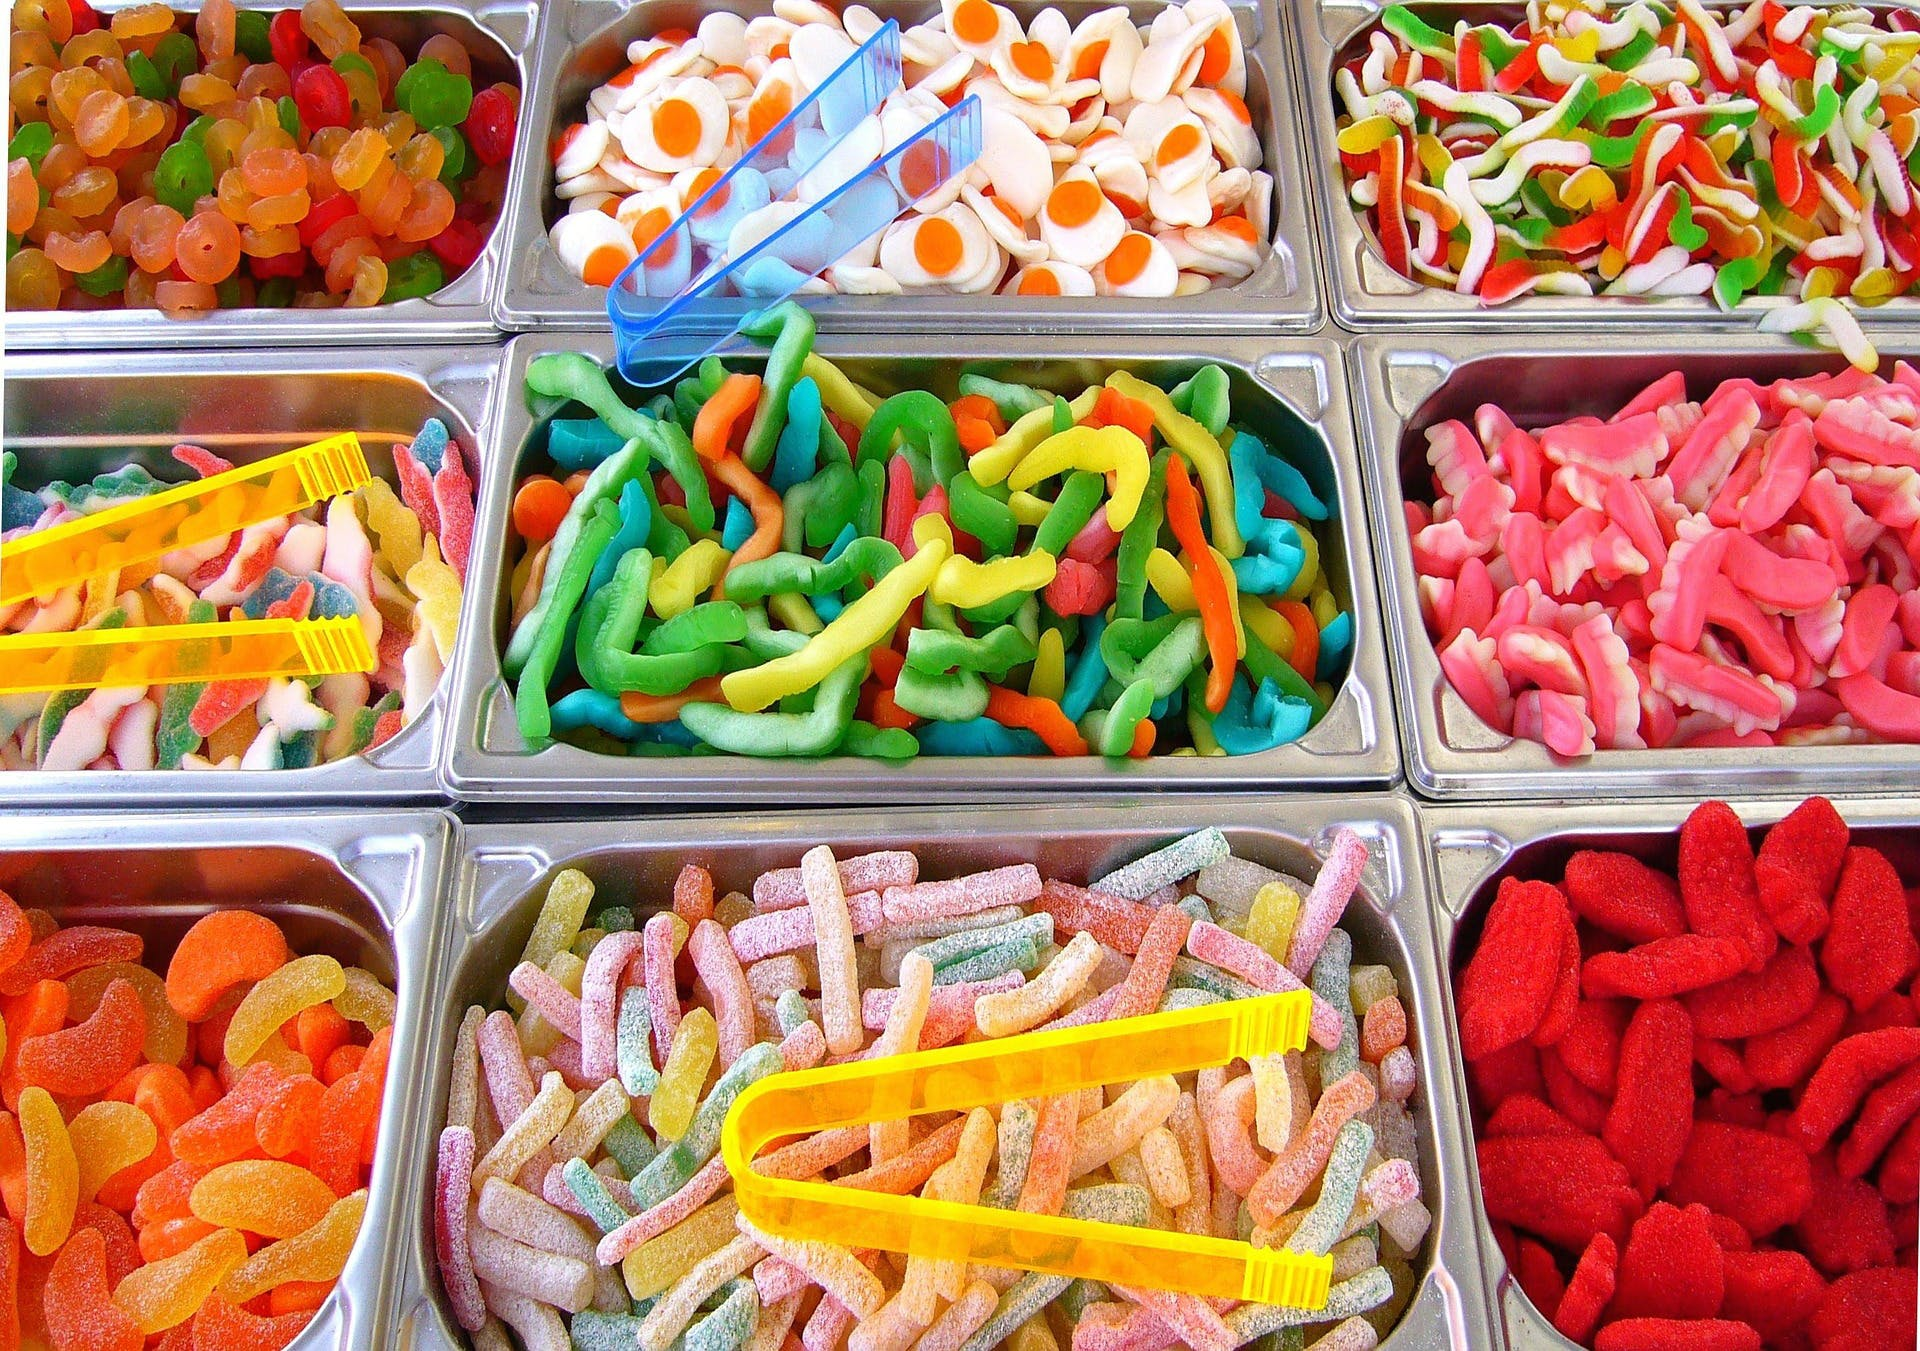 pick-and-mix-171342_1920